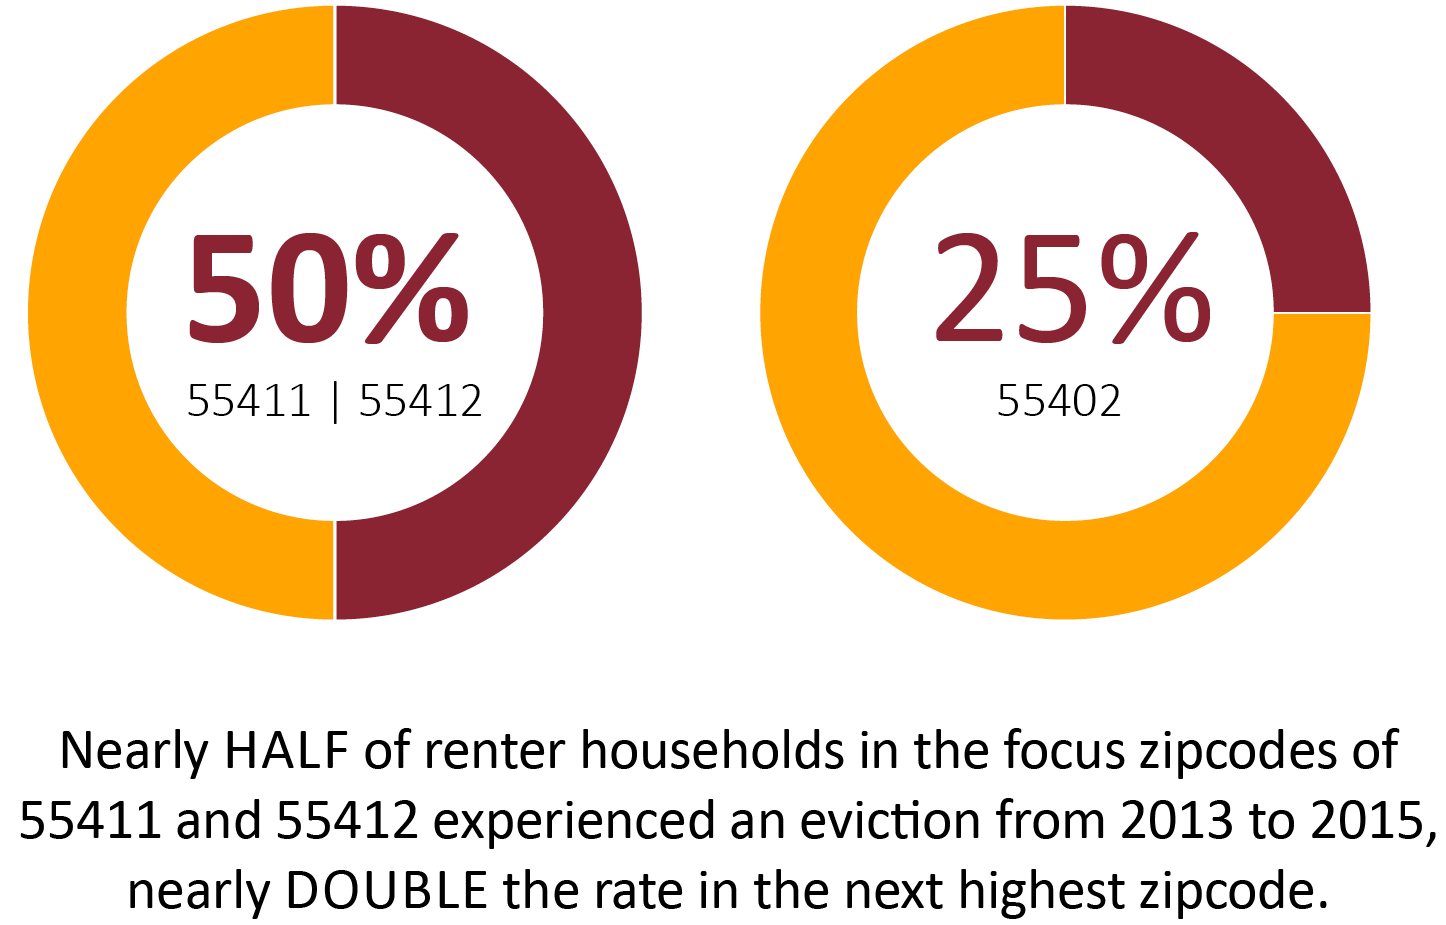 Nearly half of renter households in the focus zipcodes of 55411 and 55412 experienced an eviction from 2013 to 2015, nearly double the rate in the next highest zipcode.